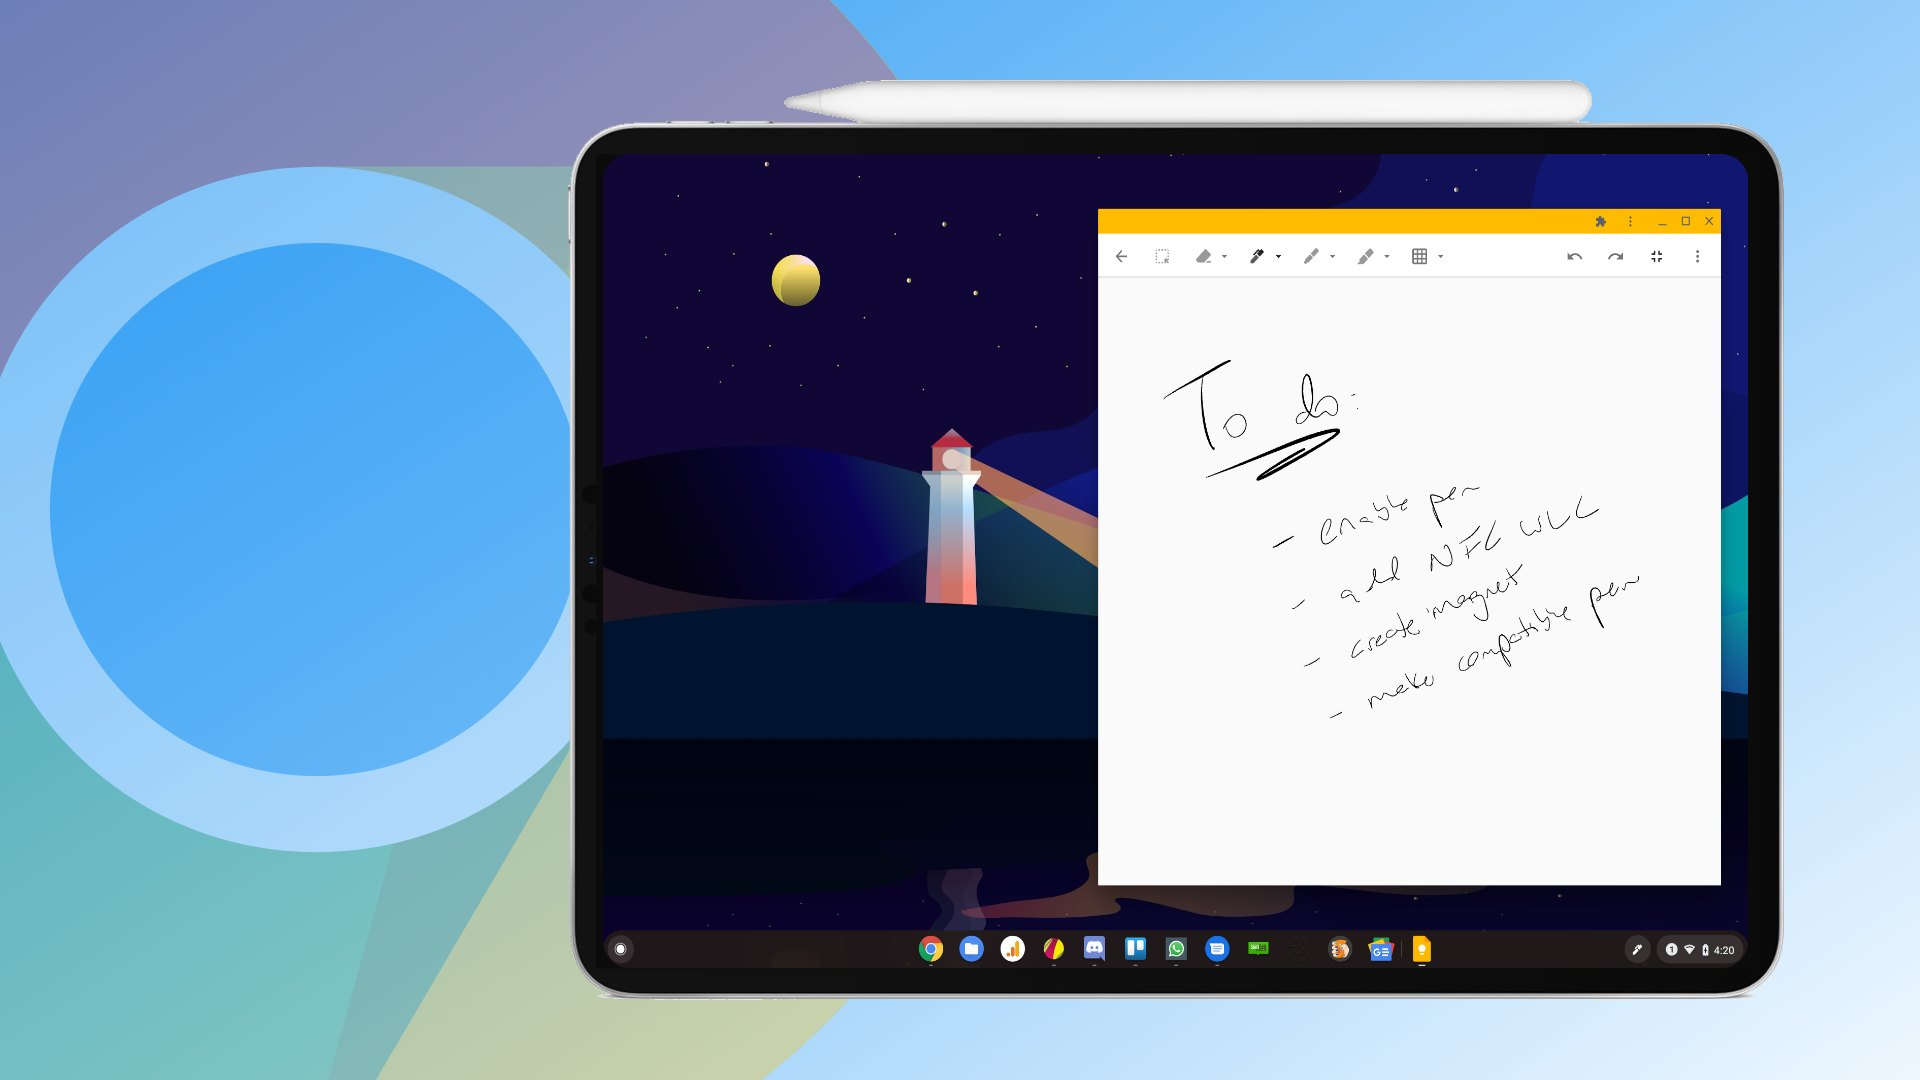 Confirmed: Snapdragon Chrome OS tablet 'Coachz' will have an external wireless charging stylus